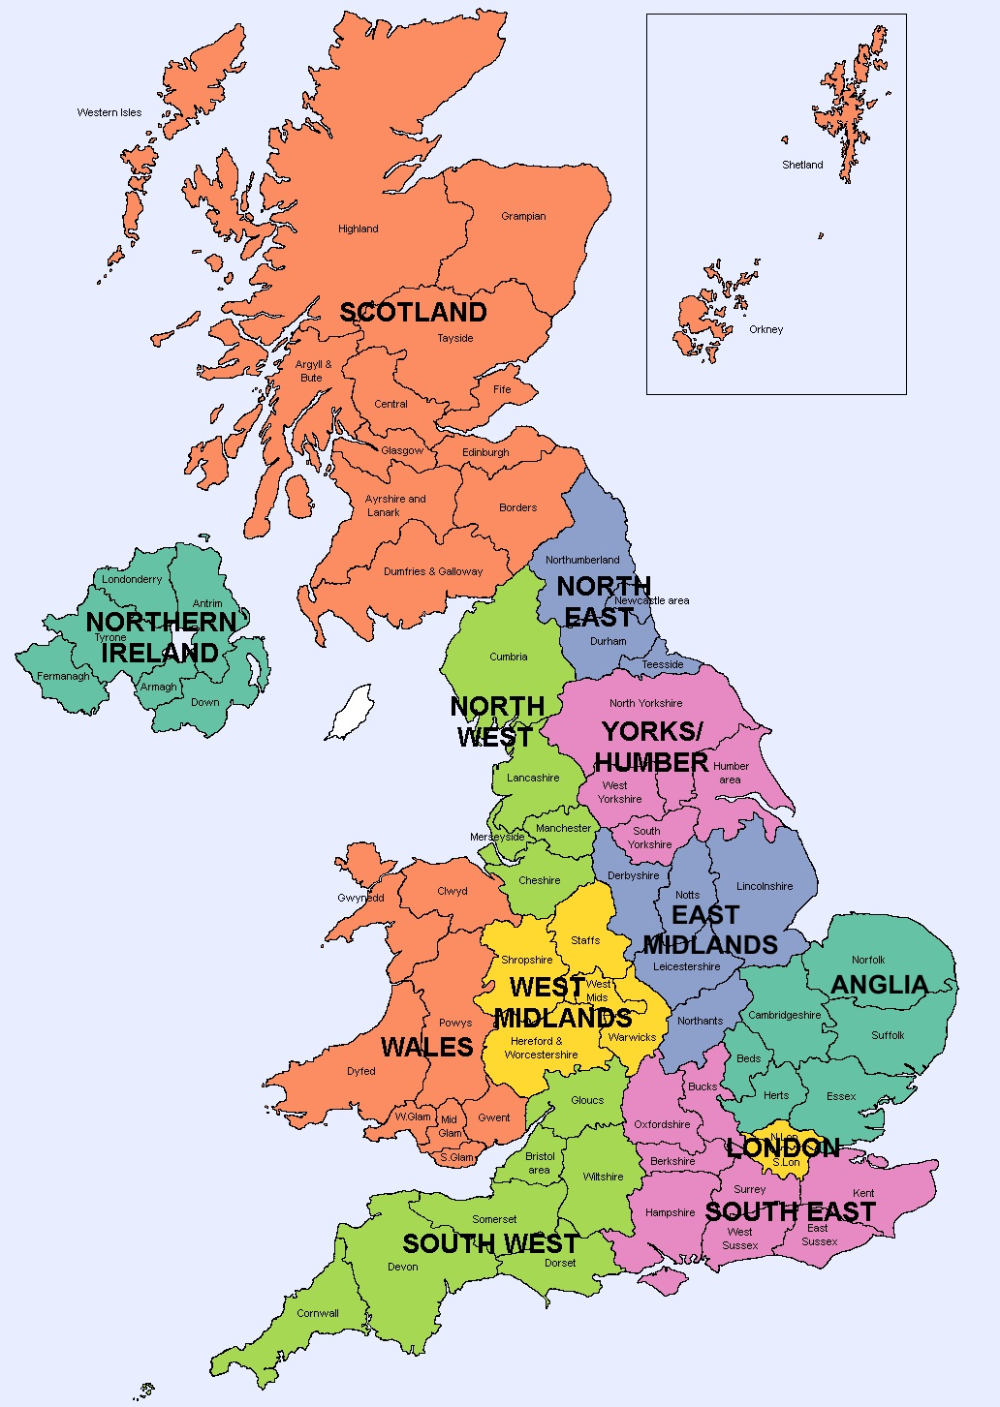 Map Of Counties In England 2020.Large Area Map In 2020 Map Of Britain England Map Area Map